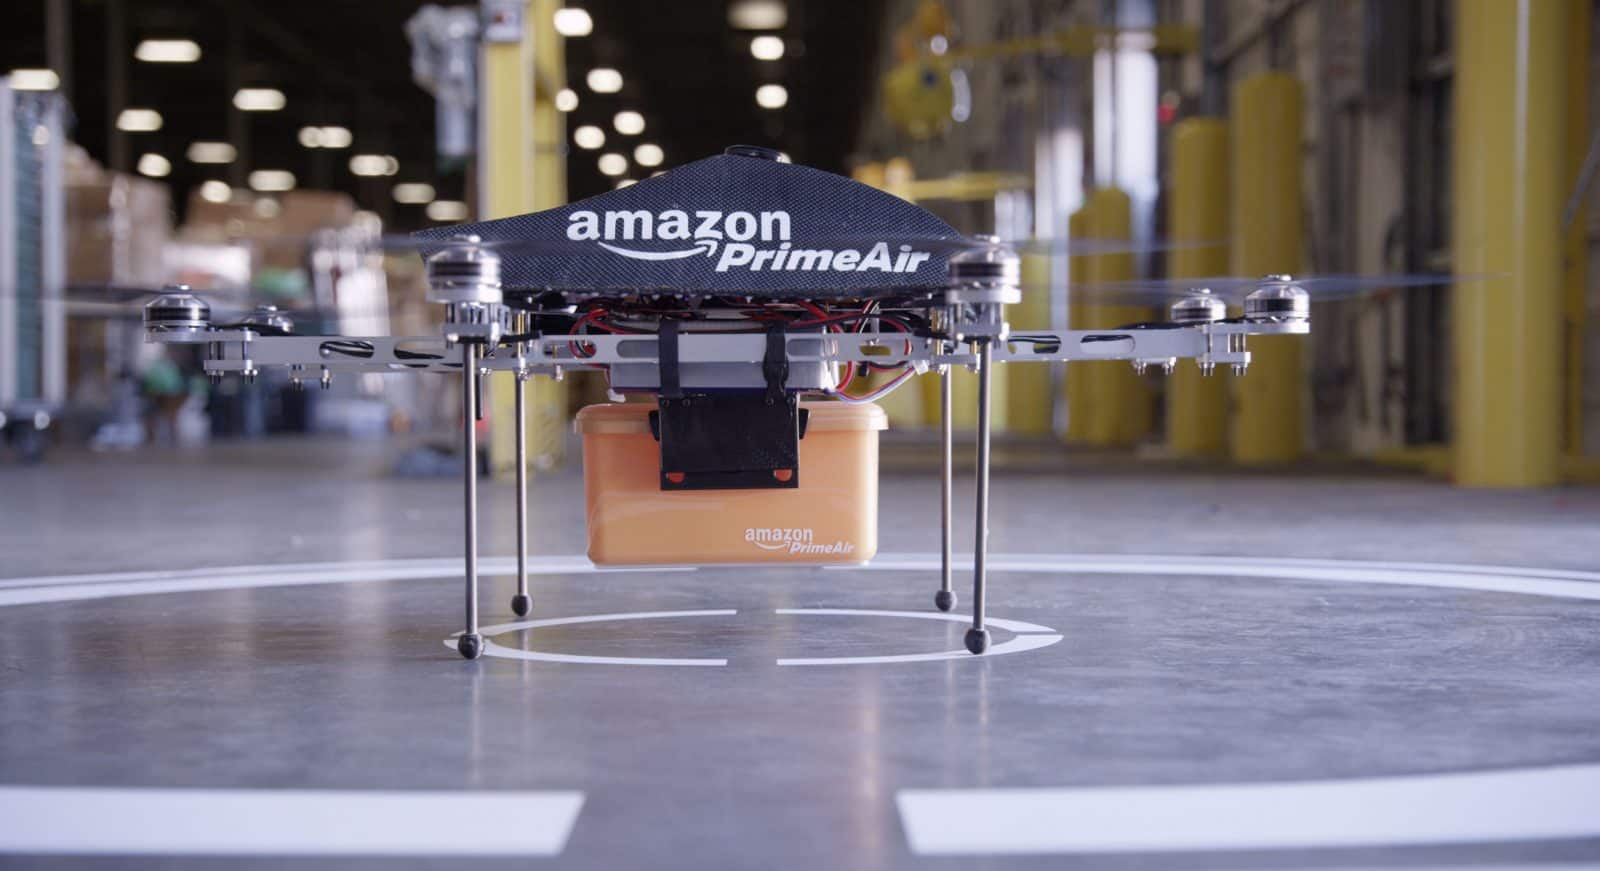 Prime Air, one of the promising new drone programs